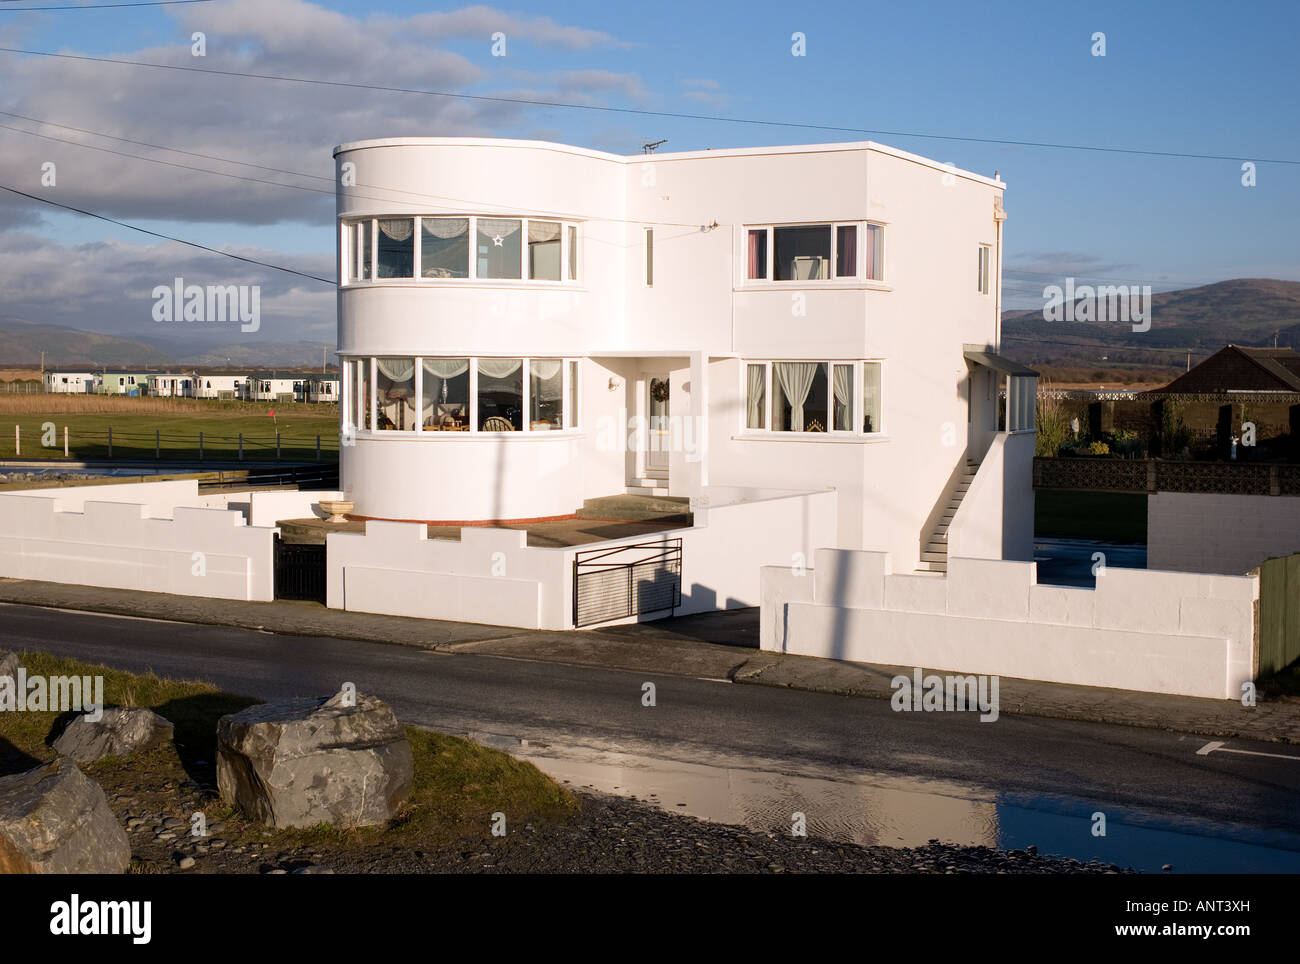 1930 S Seaside Modern Architecture Style White House Building In